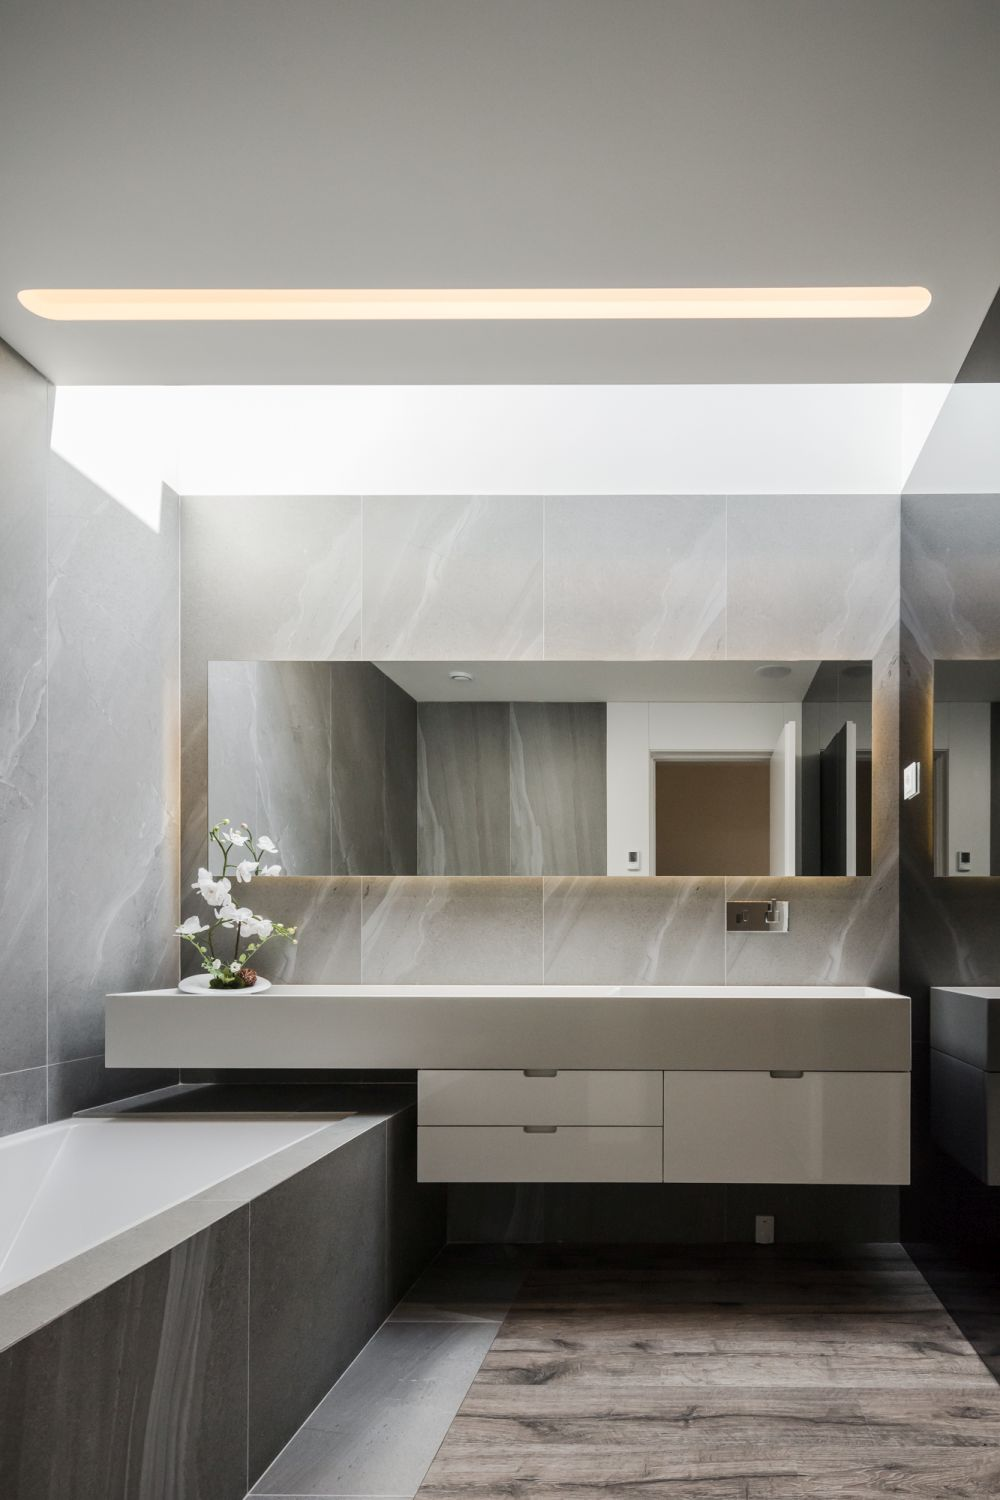 There's no shortage of natural lighting, not even in the bathrooms where skylights open up the decor